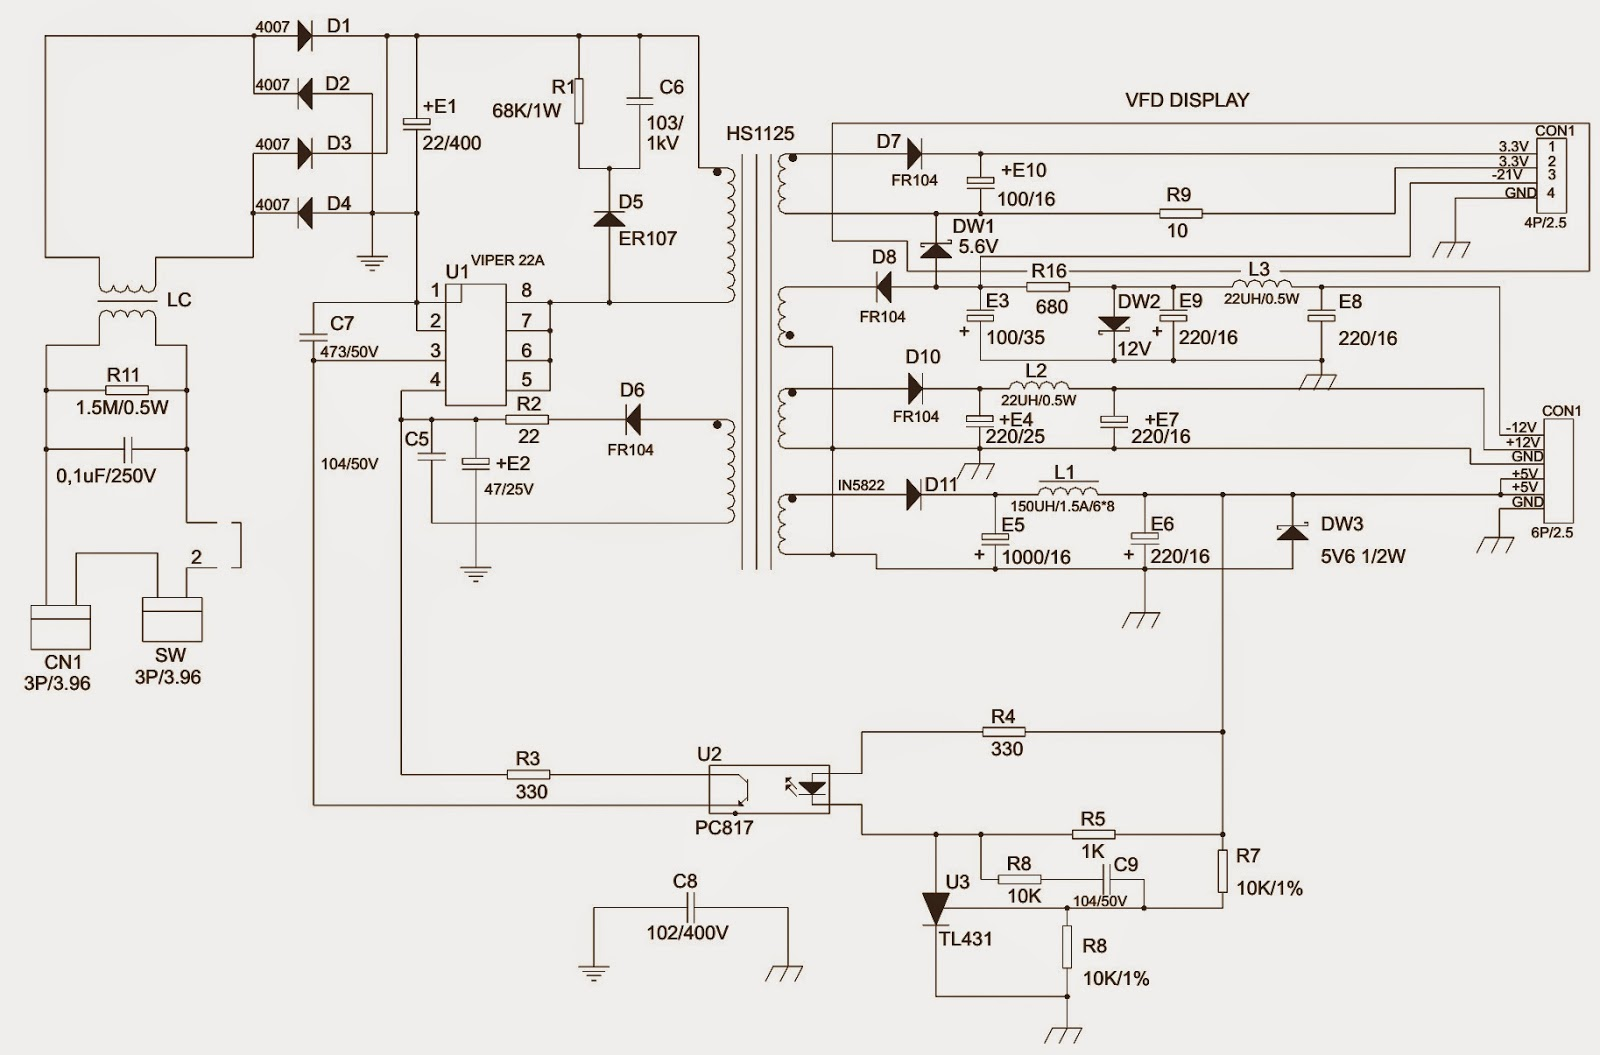 Britania Dvd Game Game Usb Smps Schematic Exploded View